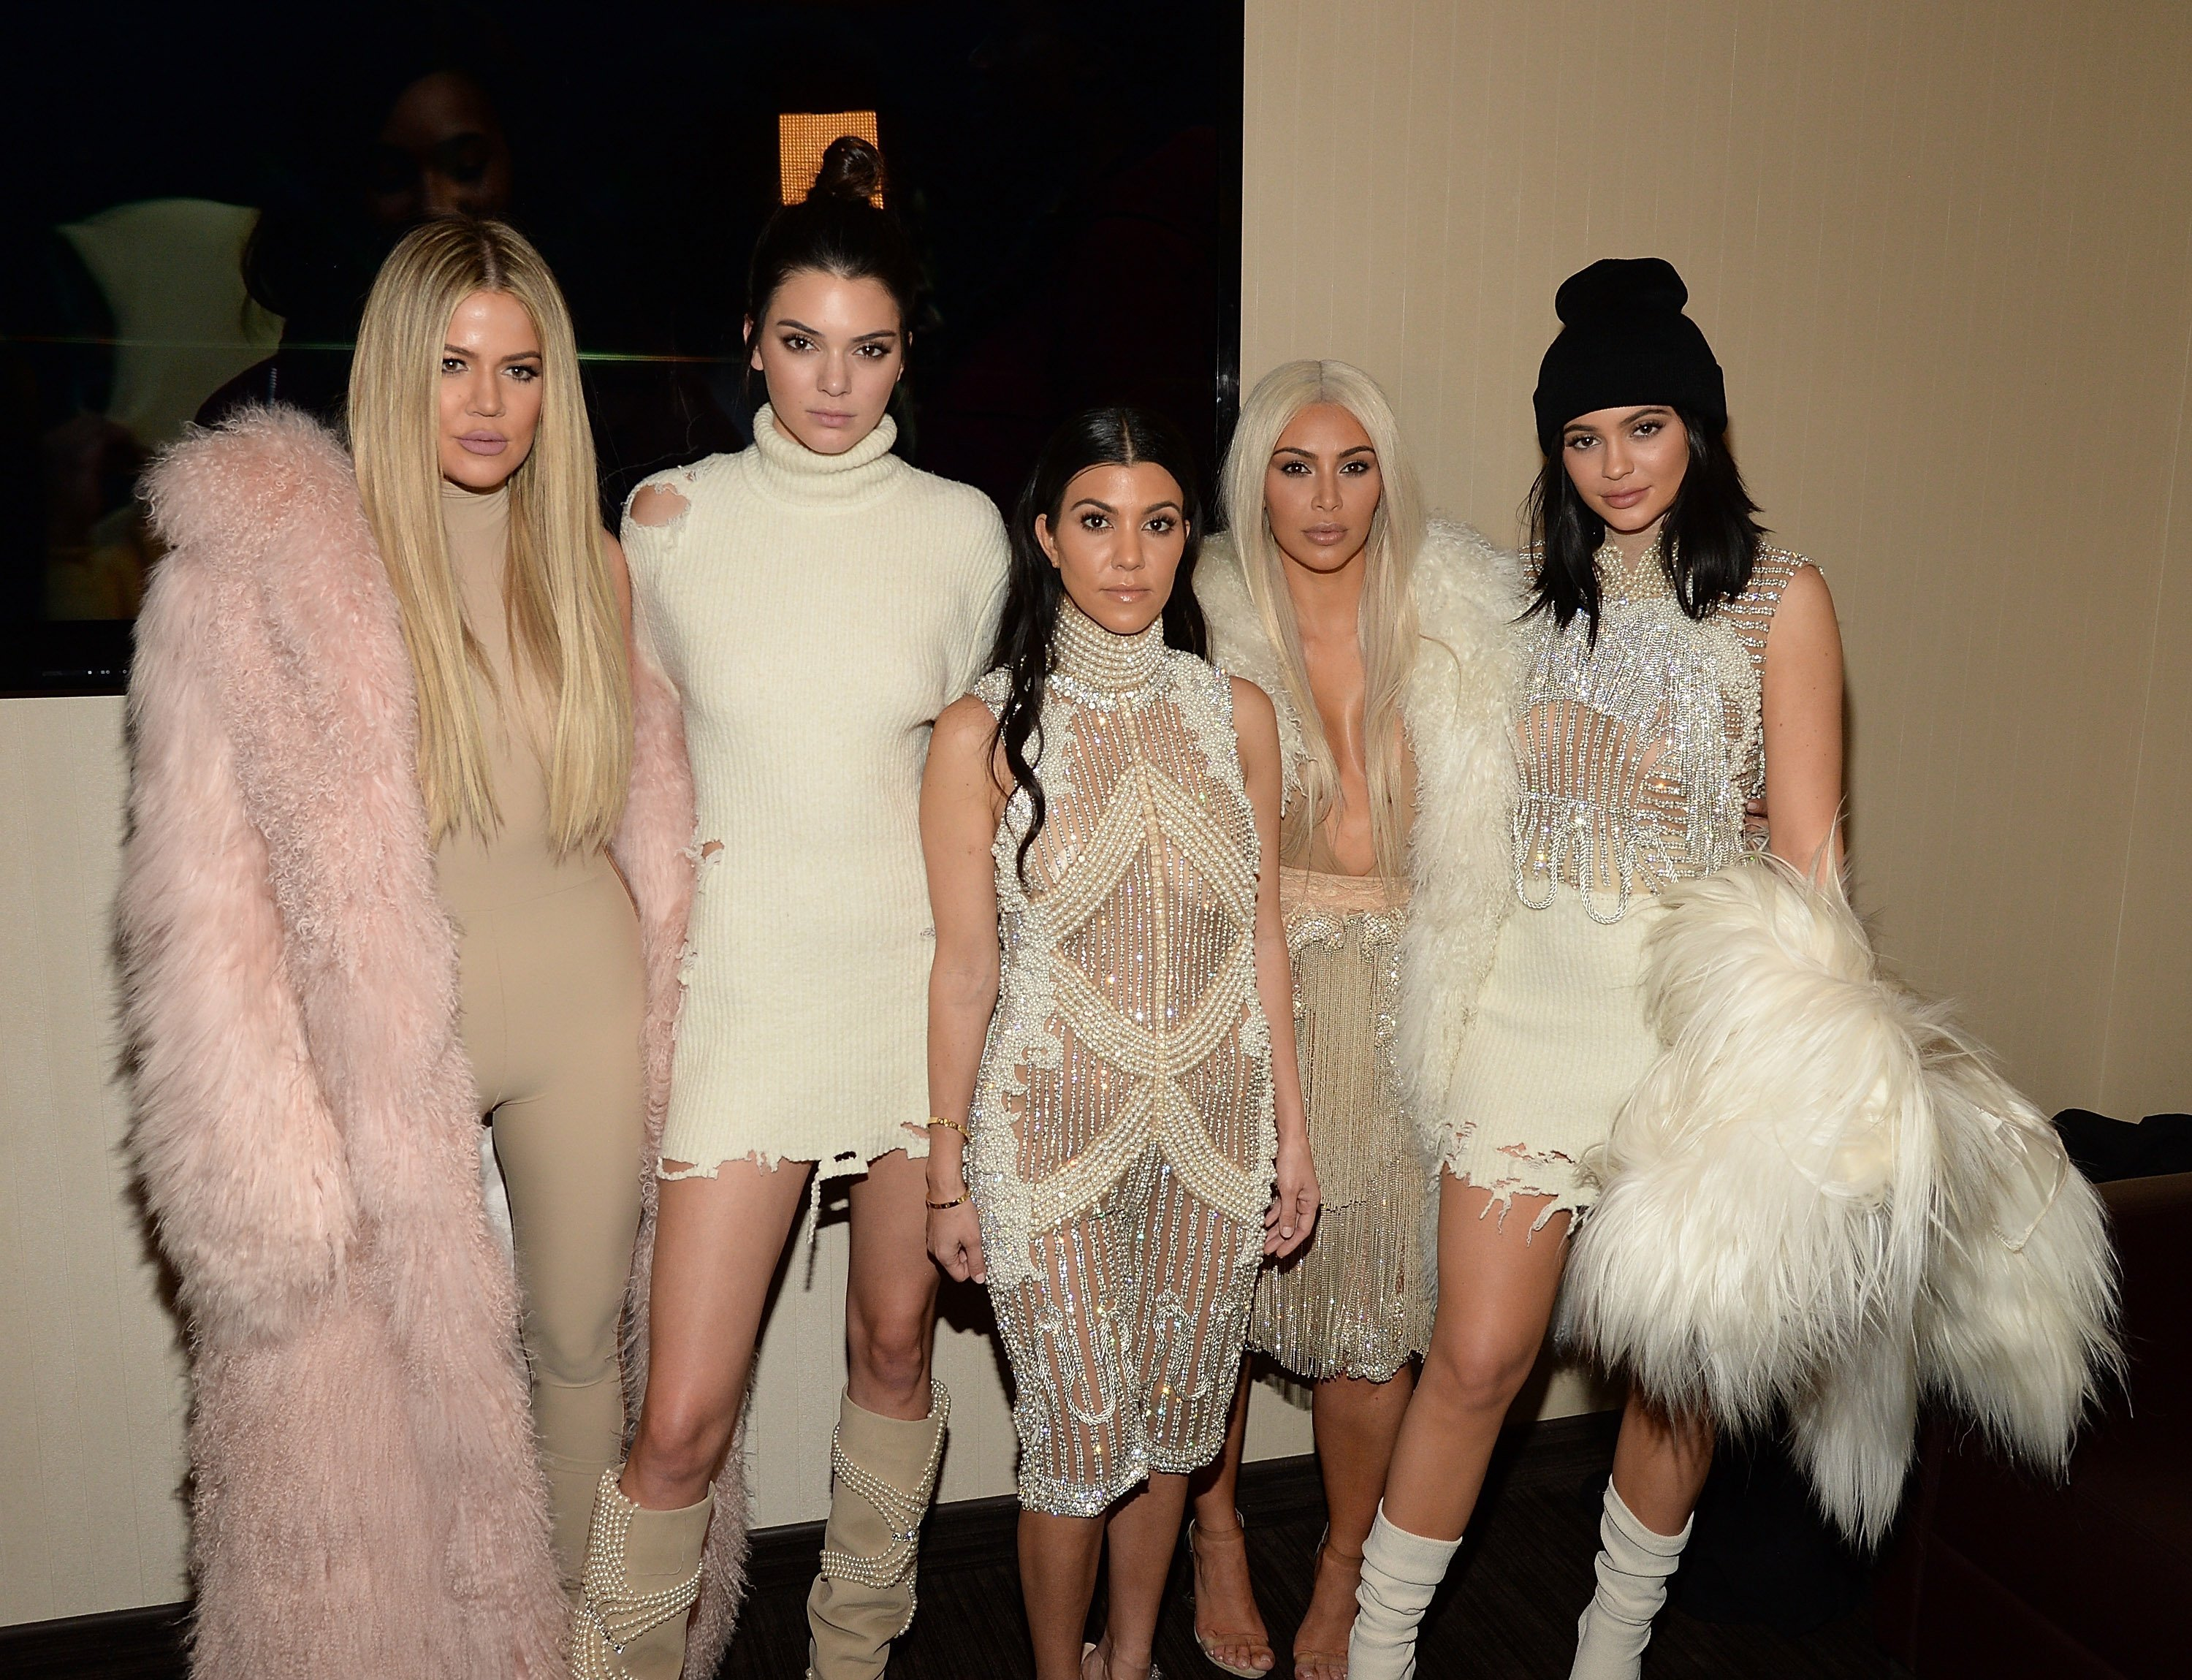 Sisters Khloe Kardashian, Kylie Jenner, Kourtney Kardashian, Kim Kardashian, and Kylie Jenner at Kanye West's Yeezy Season 3 event in February 2016. | Photo: Getty Images